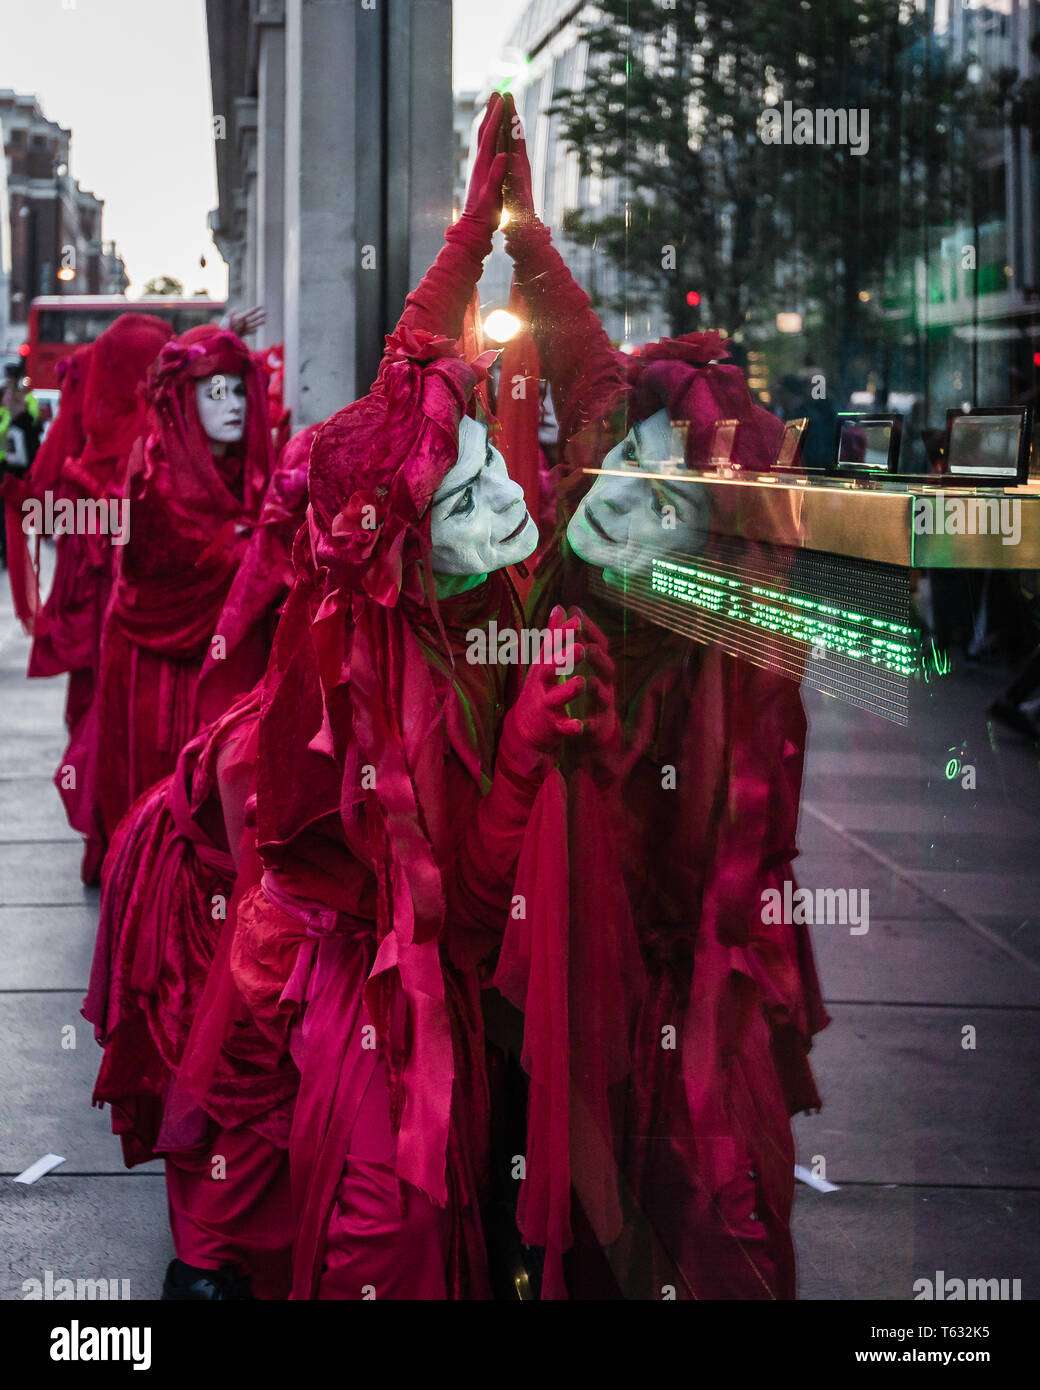 Extinction Rebellion environmental activist group, The Red Brigade seen protesting at Selfridges on Oxford Street on April 25, 2019 in London - Stock Image